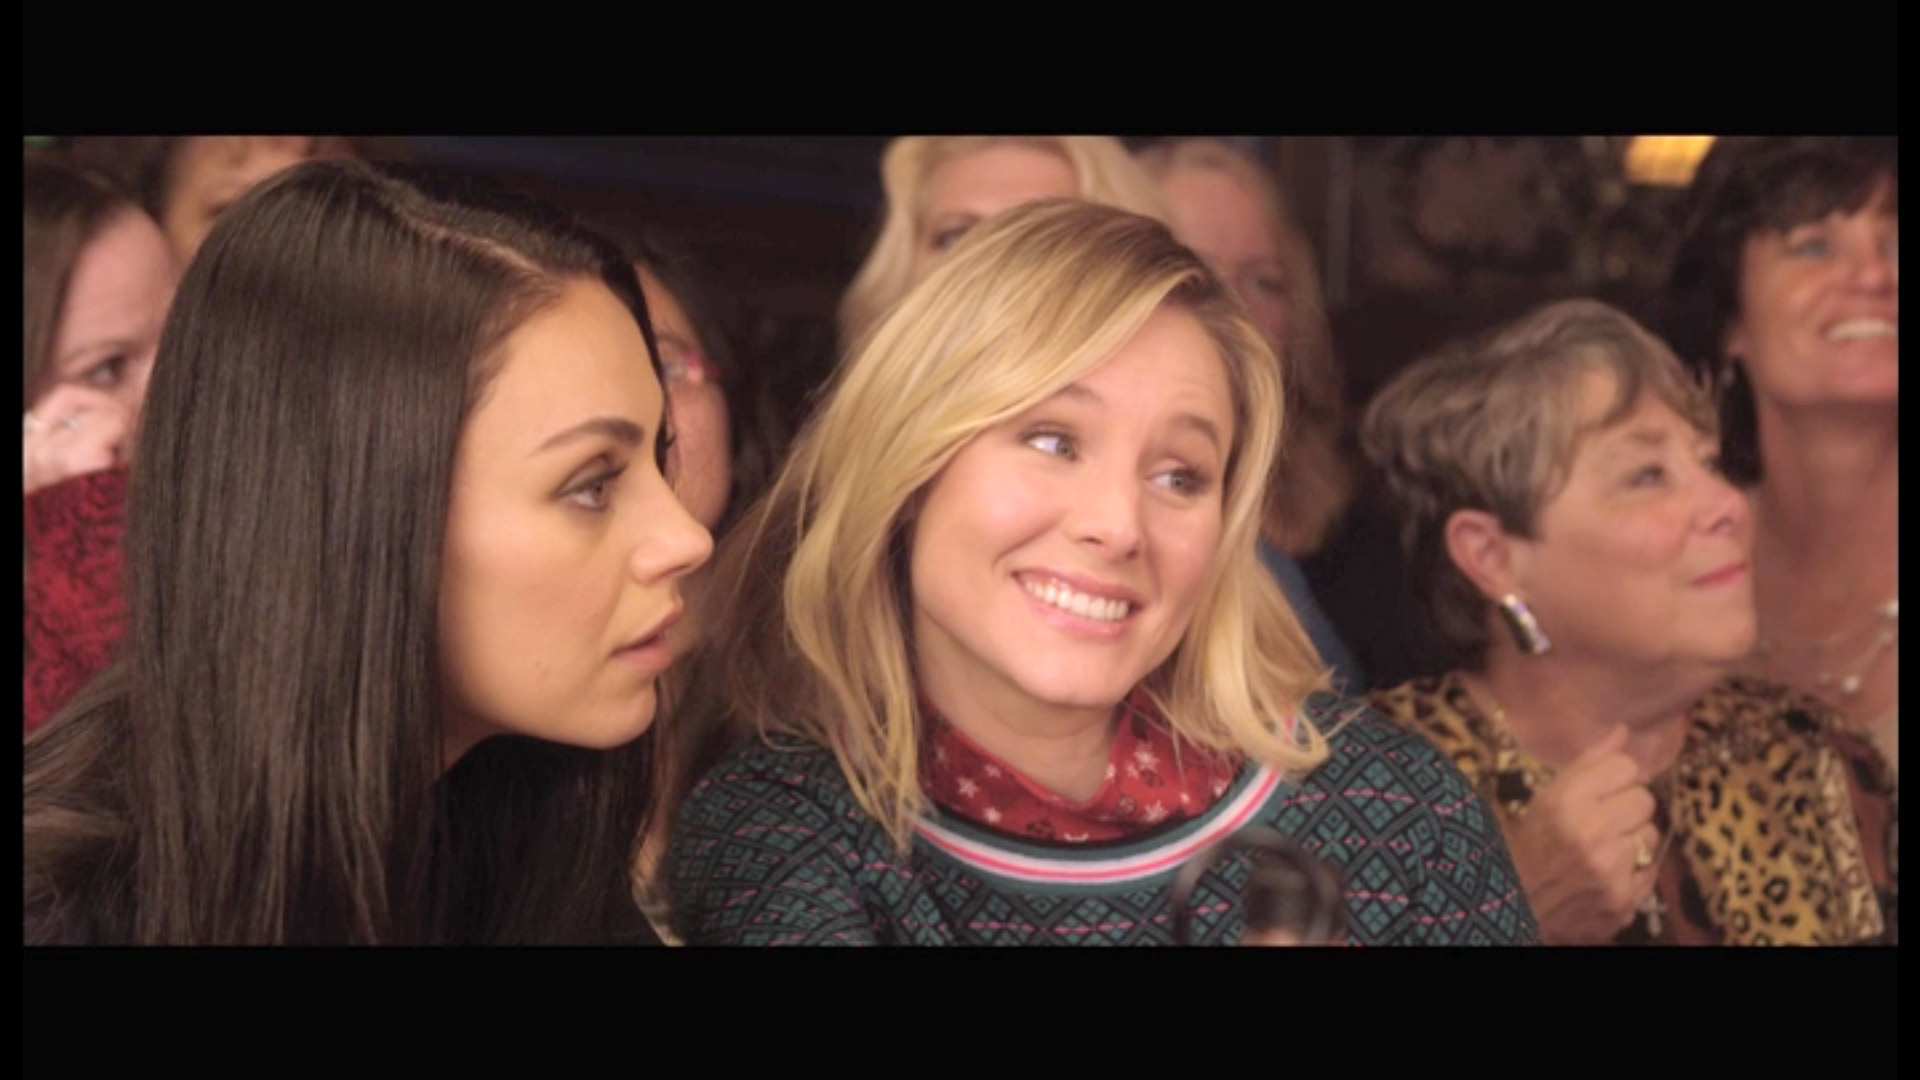 A Bad Moms Christmas Dvd Cover.Mile Kunia Kristen Bell In A Bad Moms Christmas Dvd Video